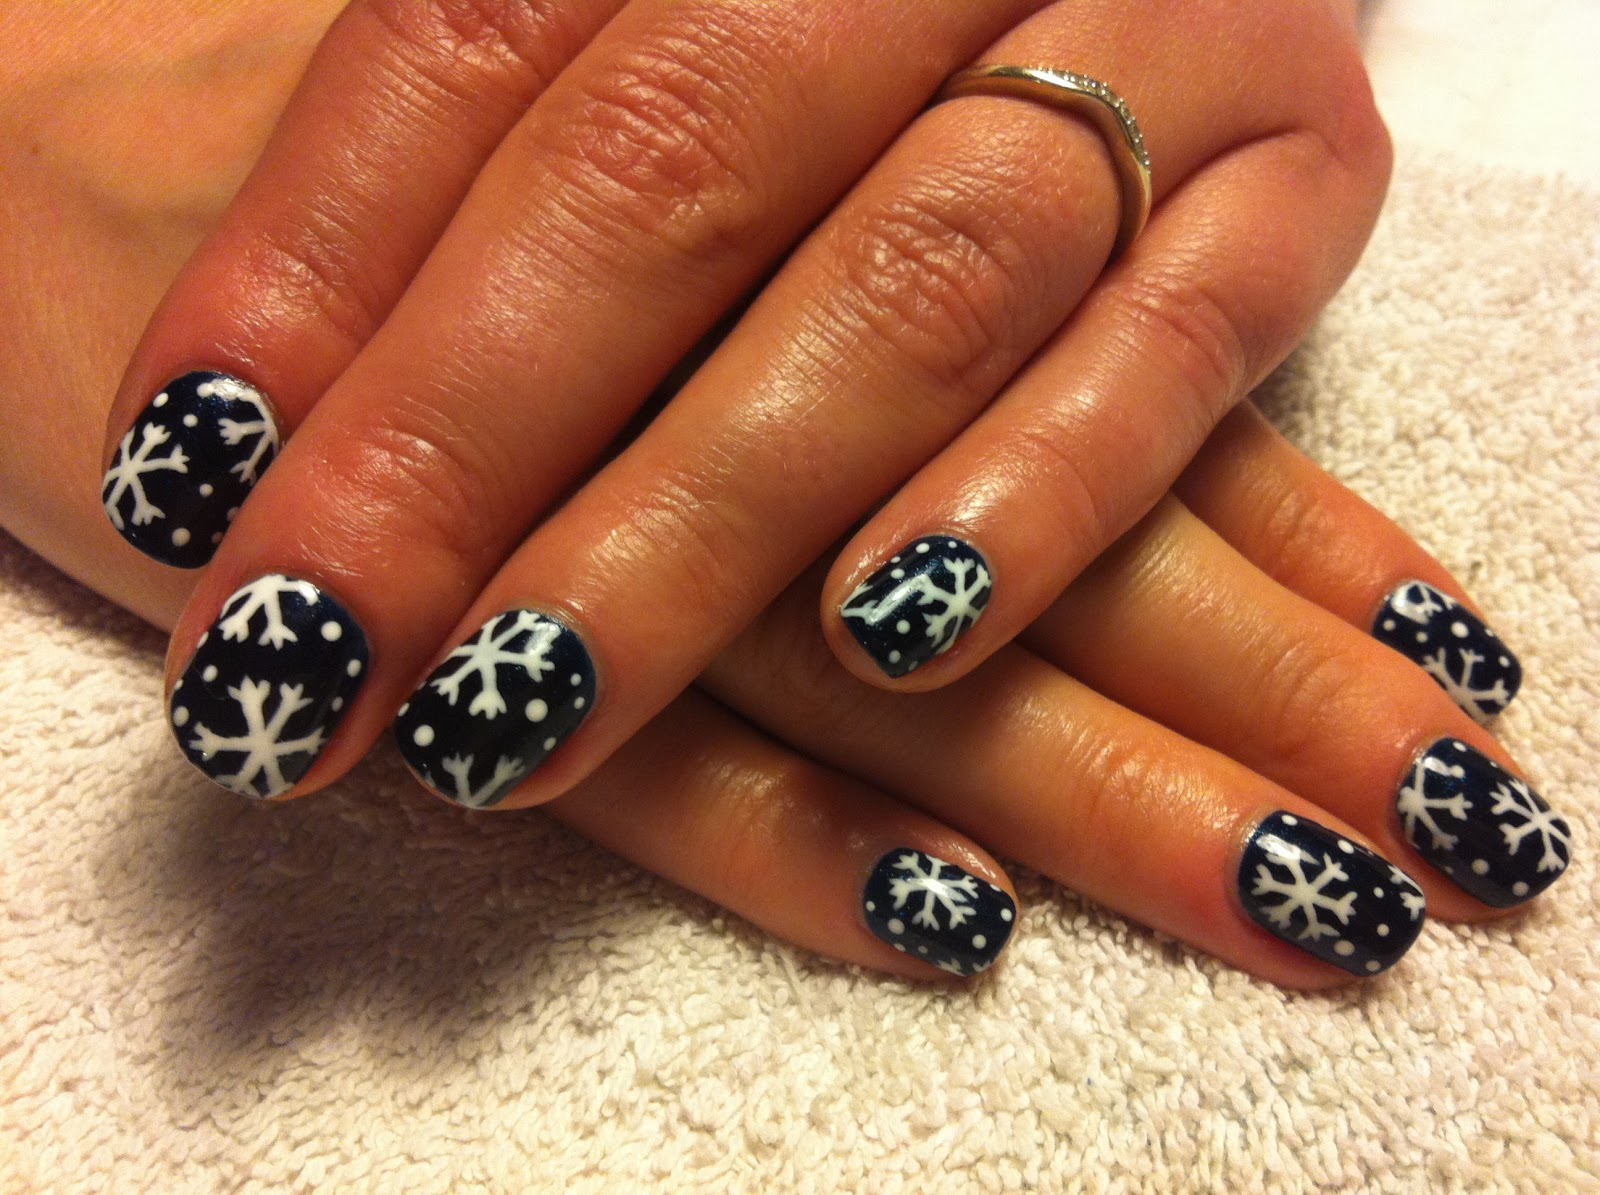 up and Polish up!: CND Shellac Christmas Nail Art - #1 Snowflakes